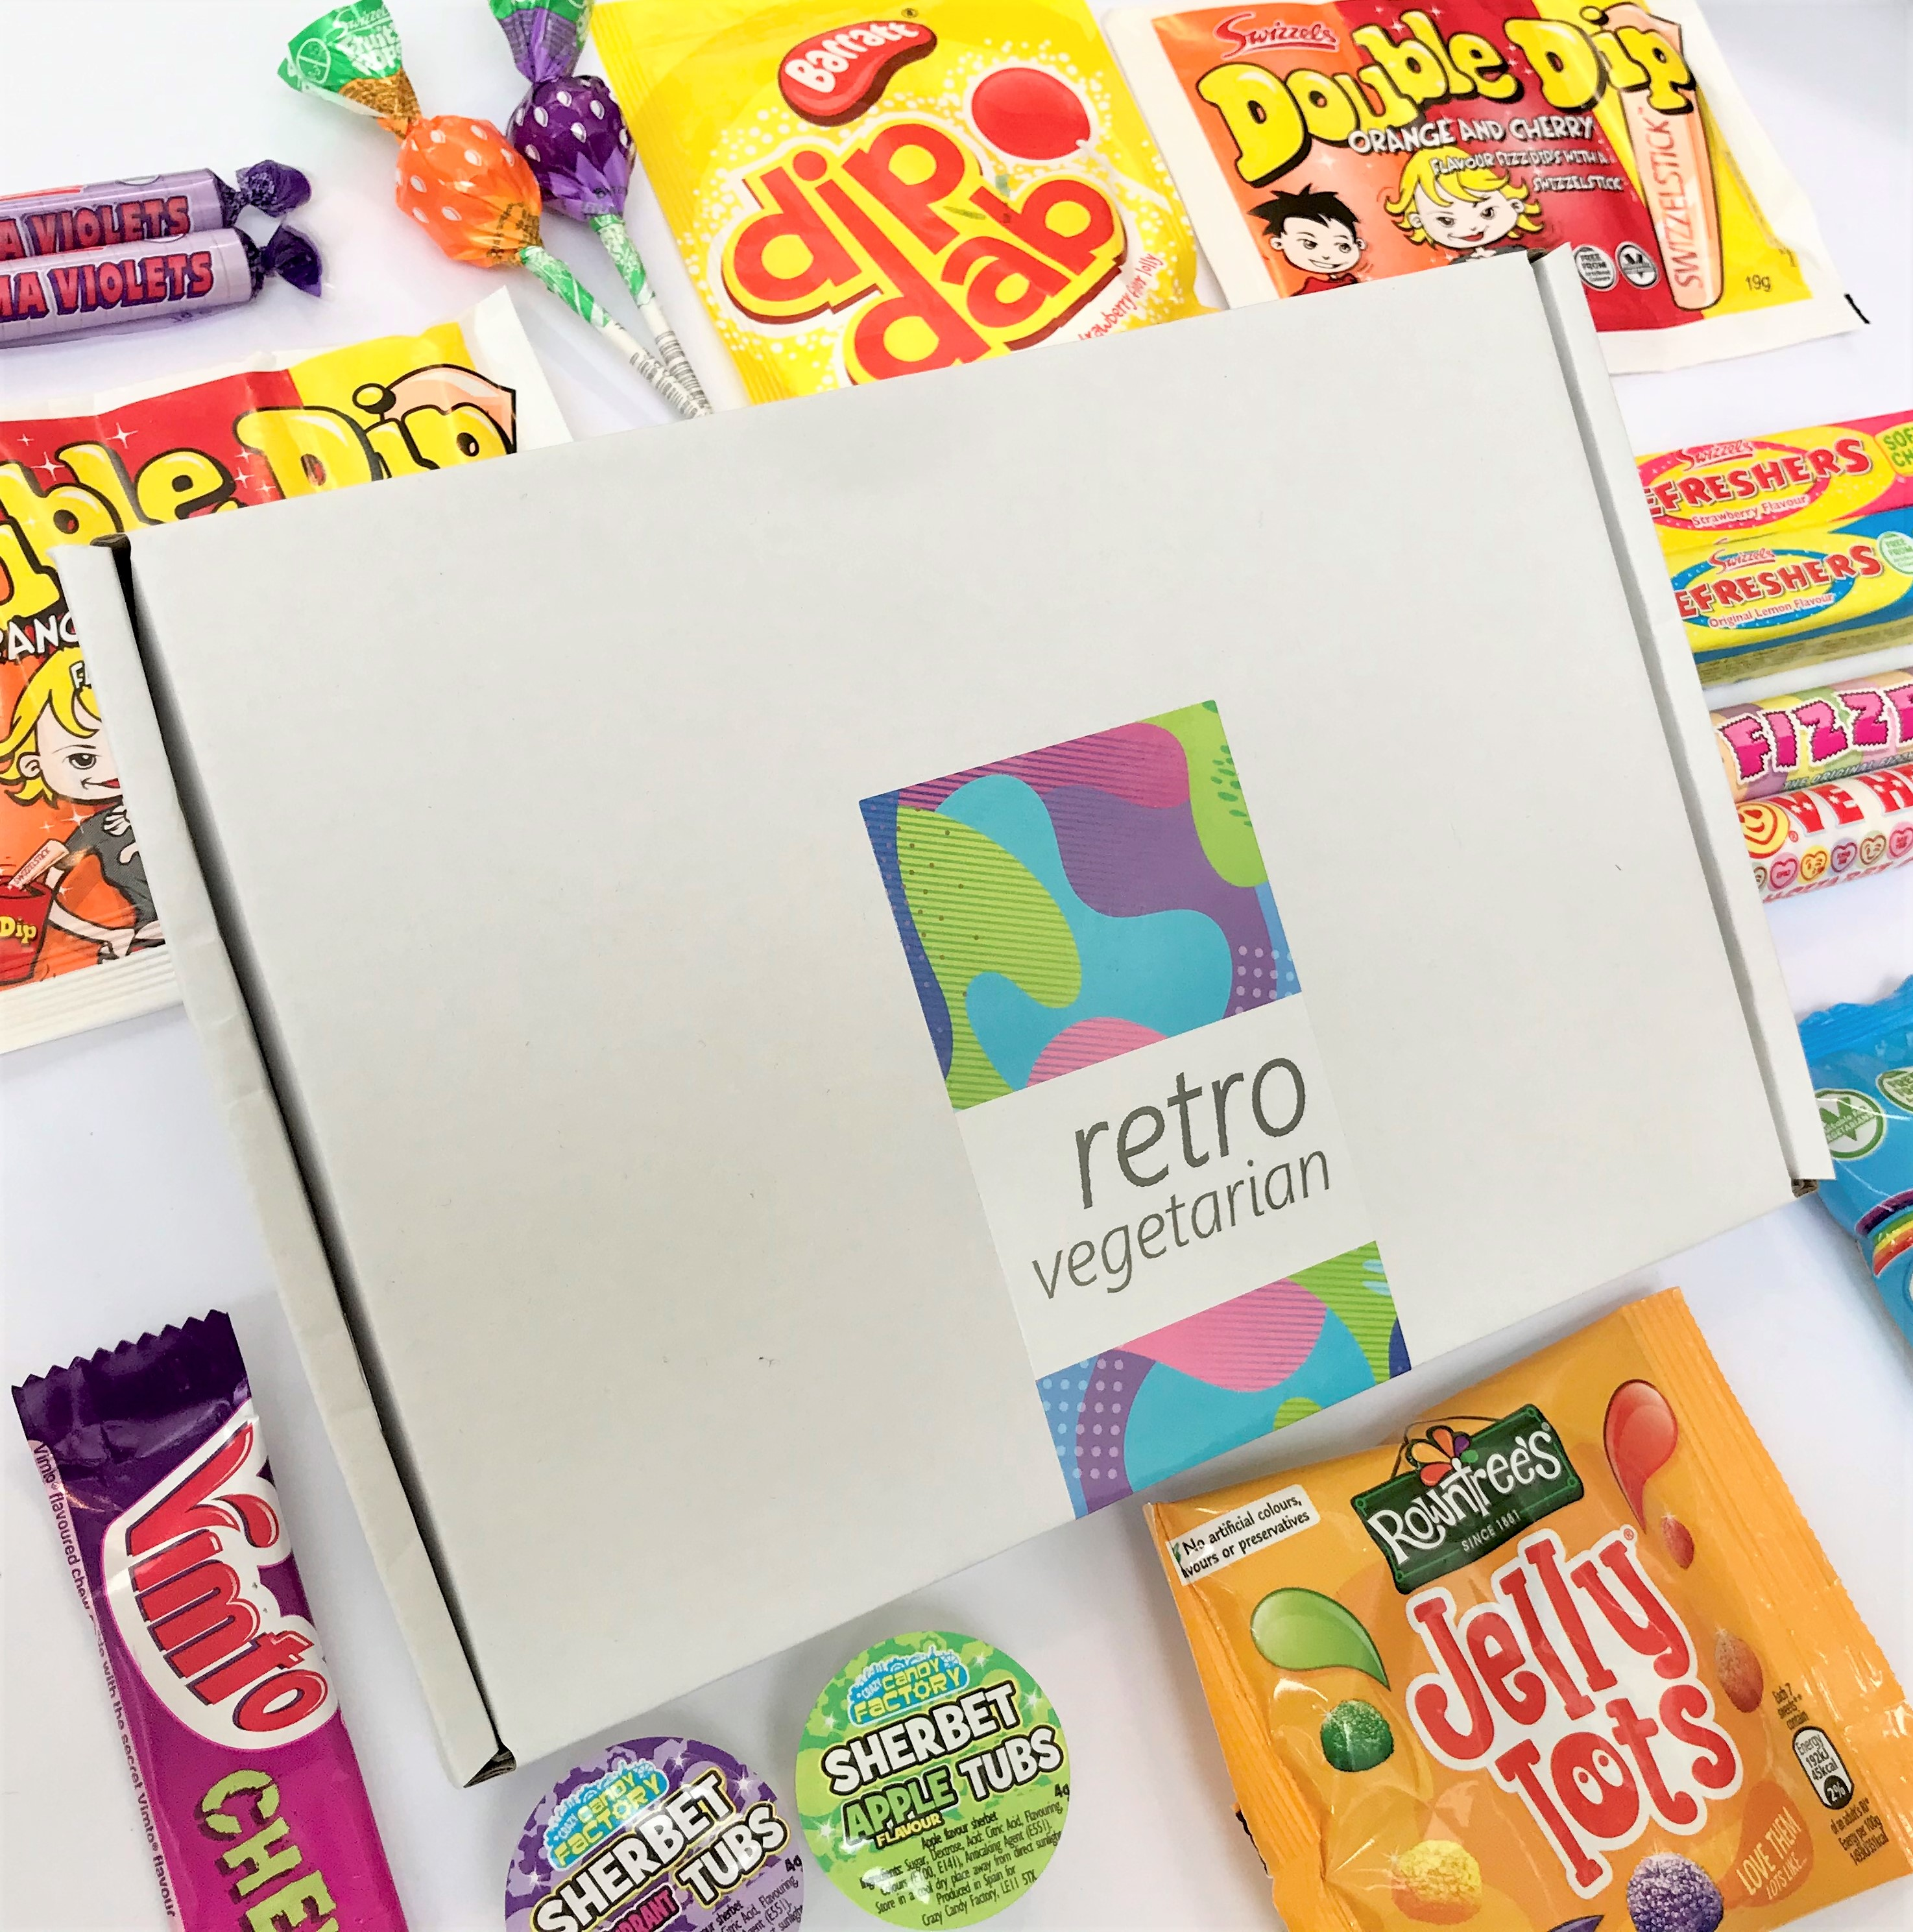 RetroVegetarian Gift Box